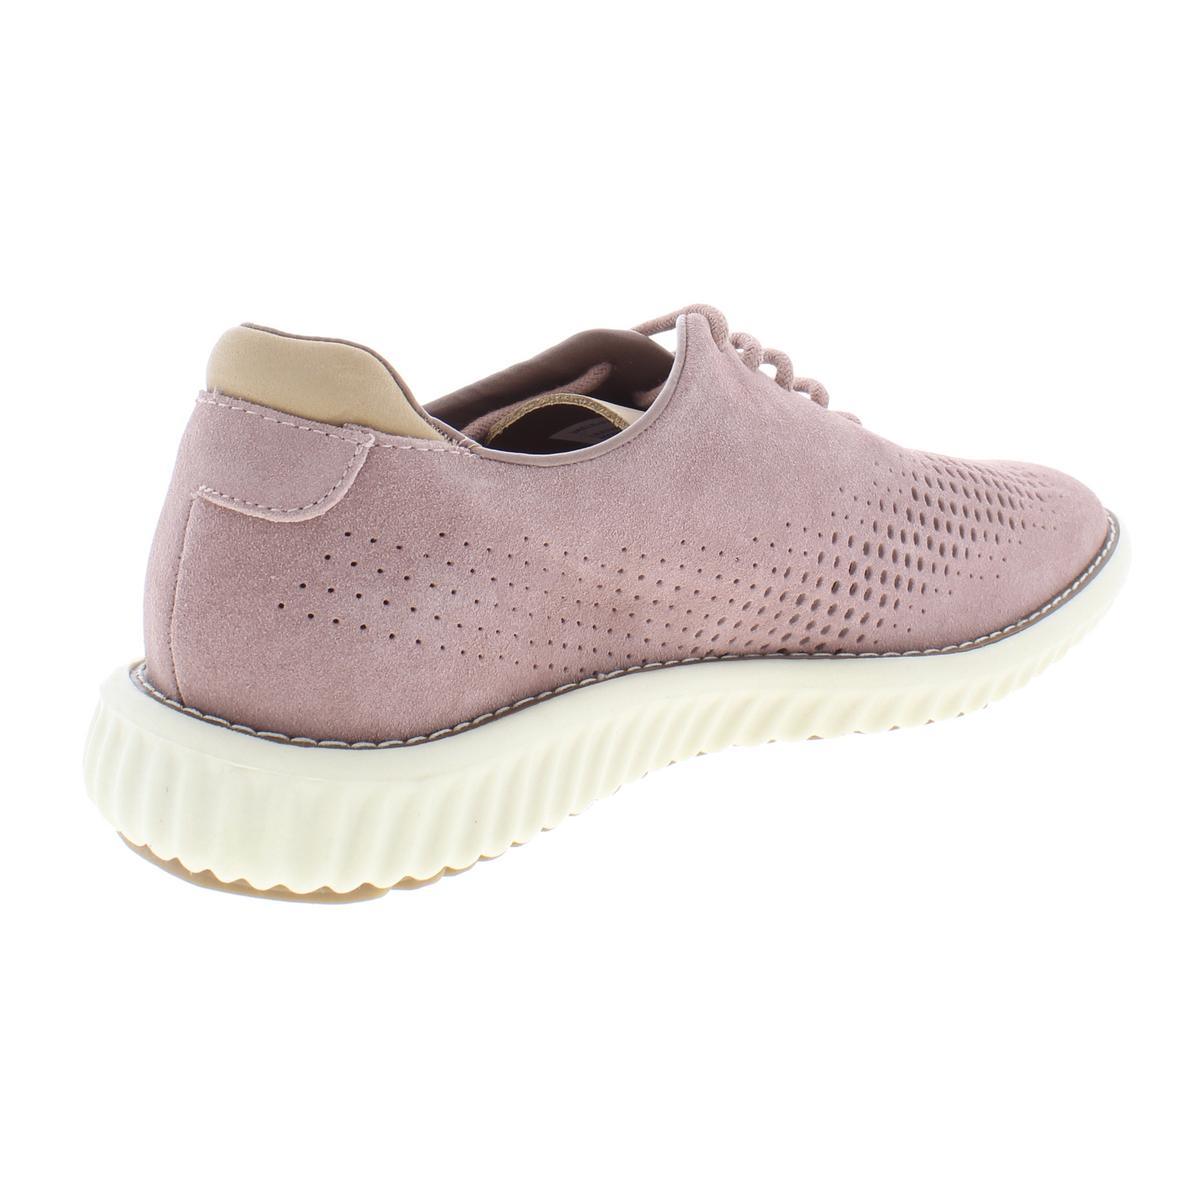 Steve-Madden-Mens-Vaelen-Suede-Perforated-Lace-Up-Oxfords-Sneakers-BHFO-9910 thumbnail 9